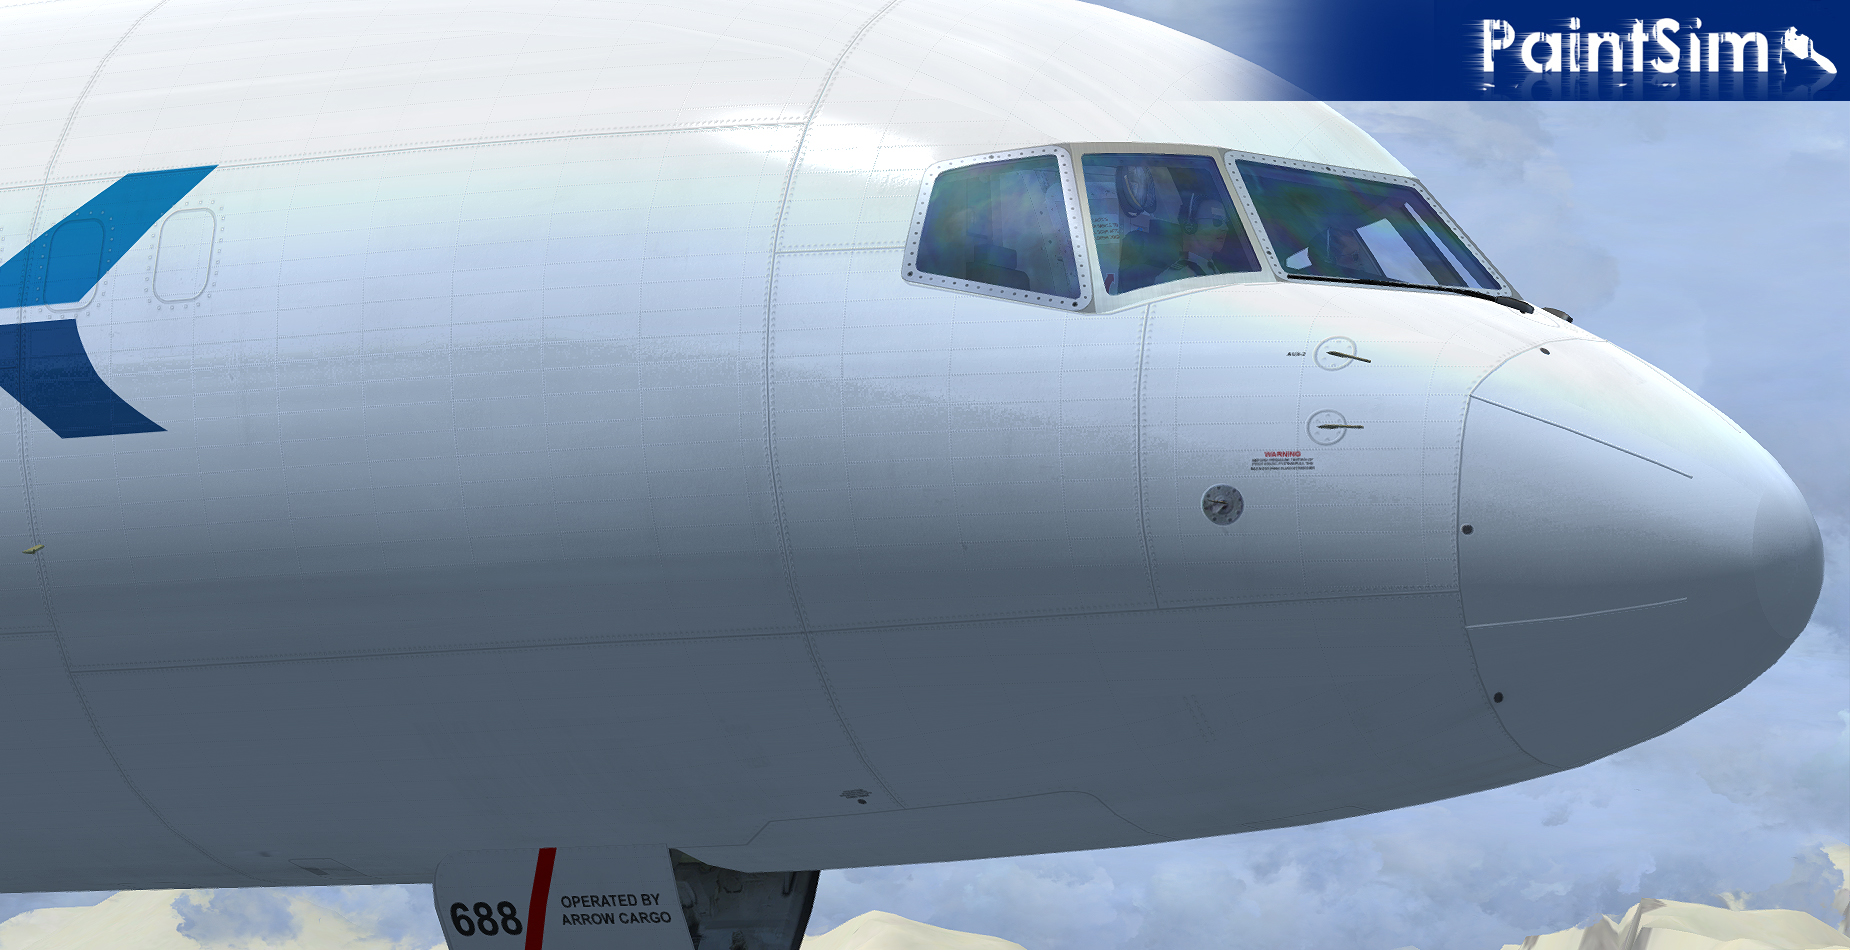 PAINTSIM - UHD TEXTURE PACK 2 FOR CAPTAIN SIM BOEING 757-200 CARGO III FSX P3D